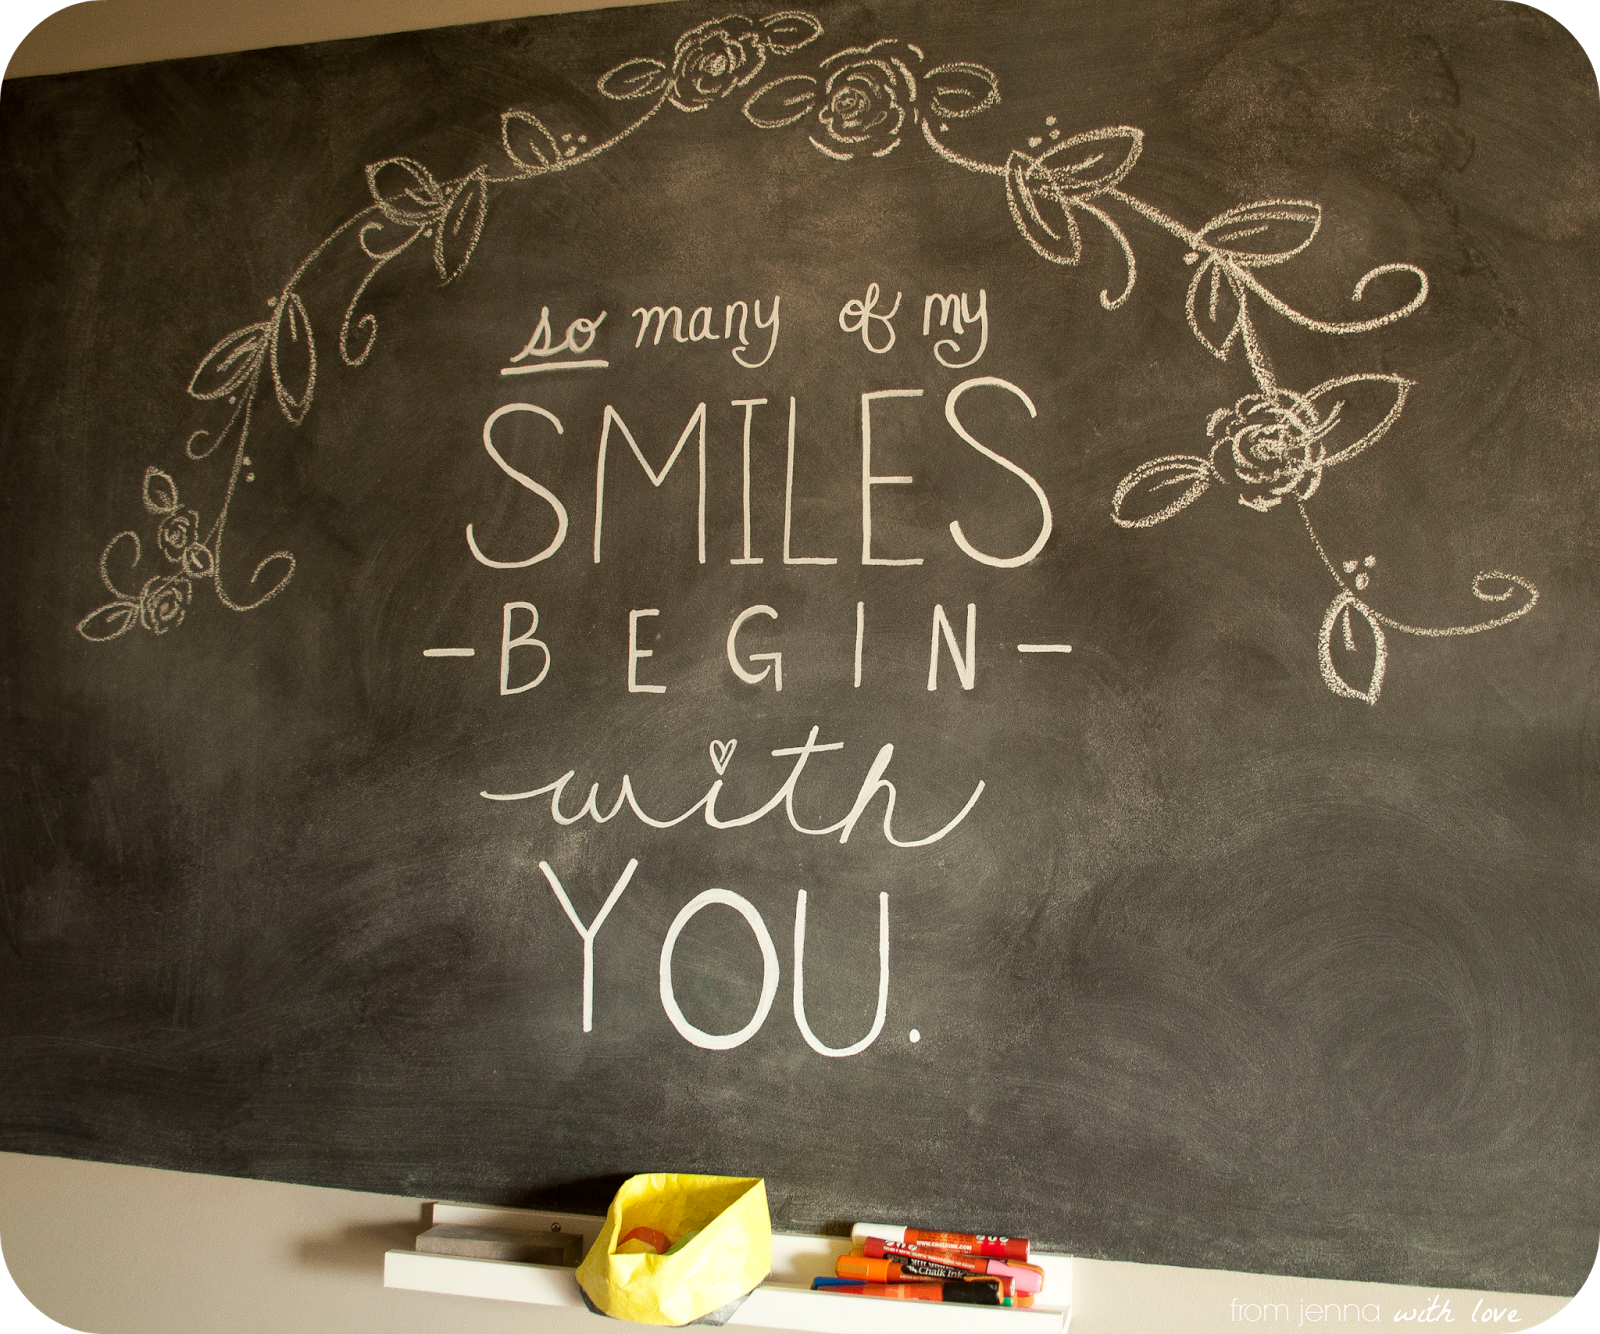 So many of my smiles begin with you <3    >> From Jenna with Love